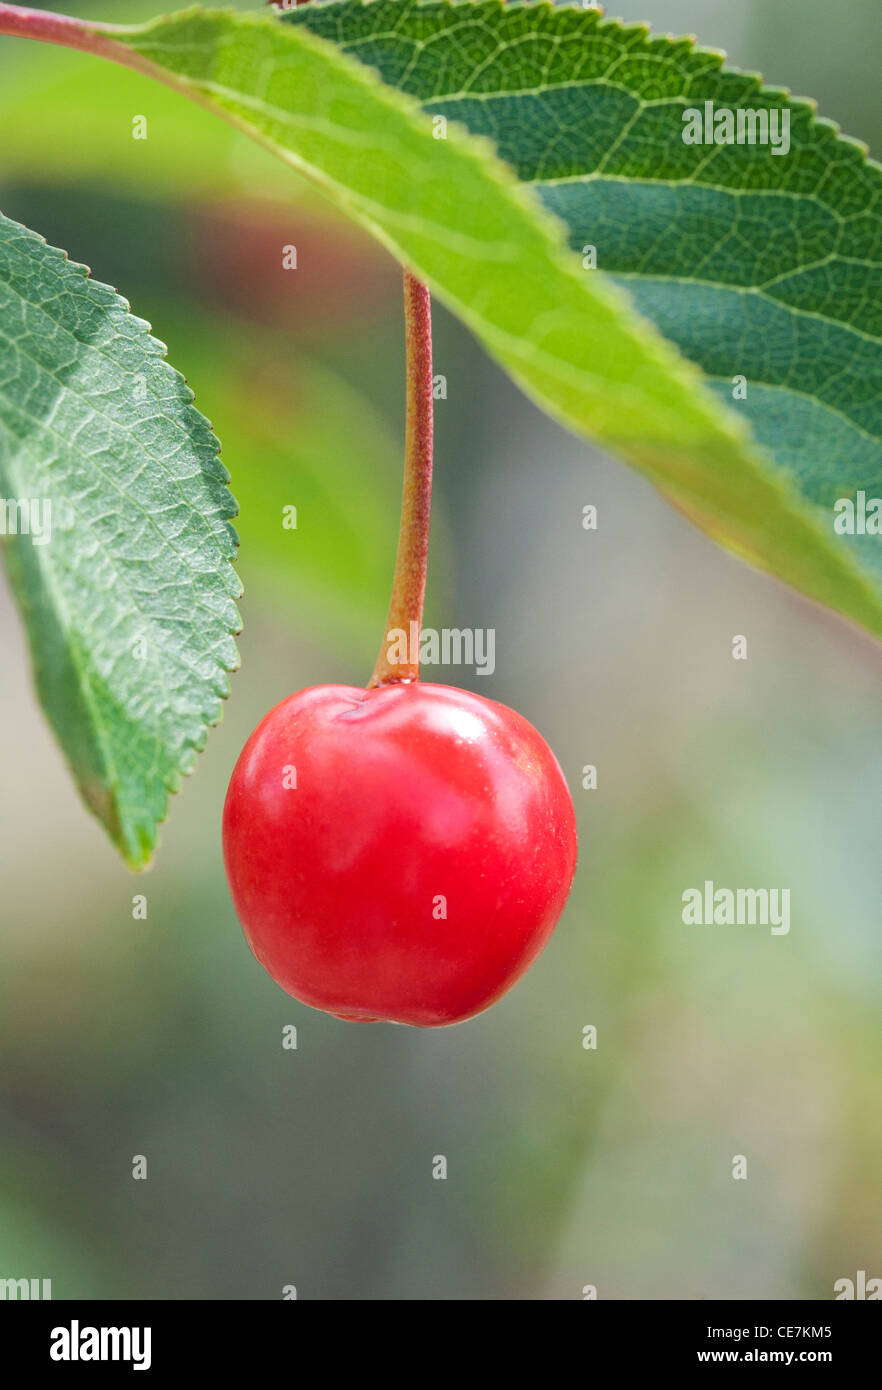 Single ripe bright red fruit hanging down from the branch of a Prunus cerasus 'Nabella' Acid Cherry tree. - Stock Image